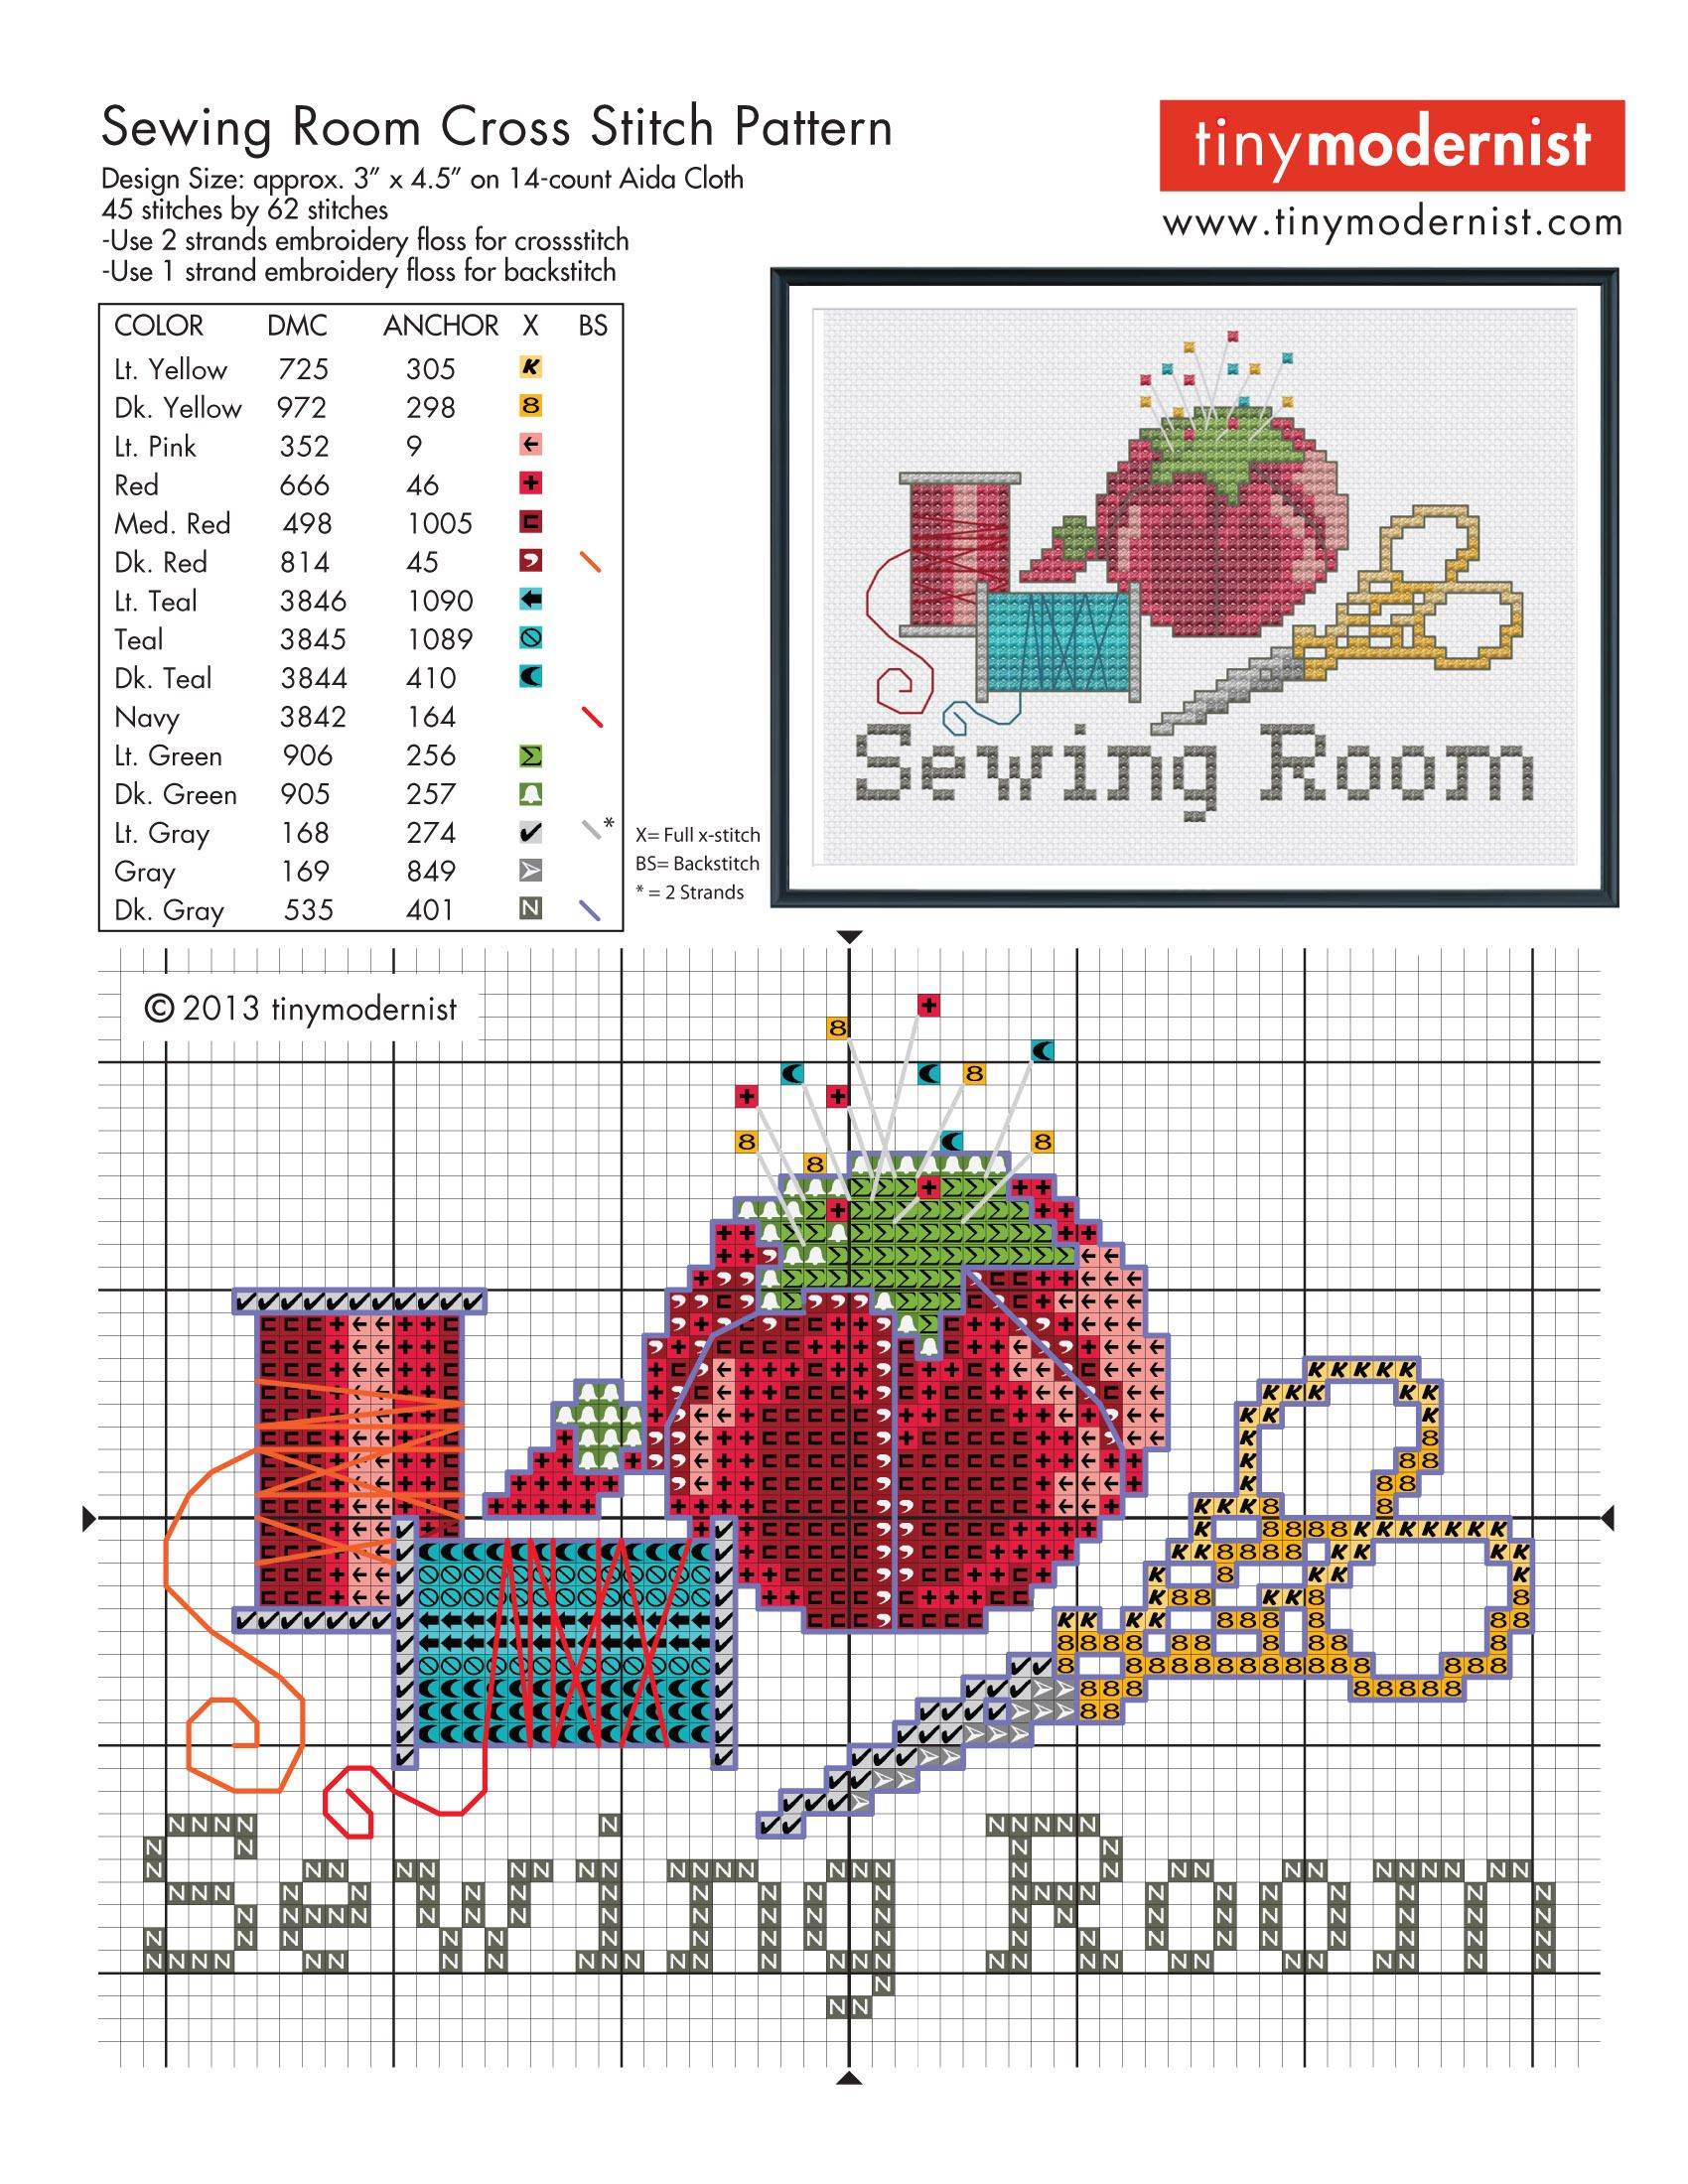 Free Cross Stitch Patterns Cross Stitch Patterns Cross Stitch